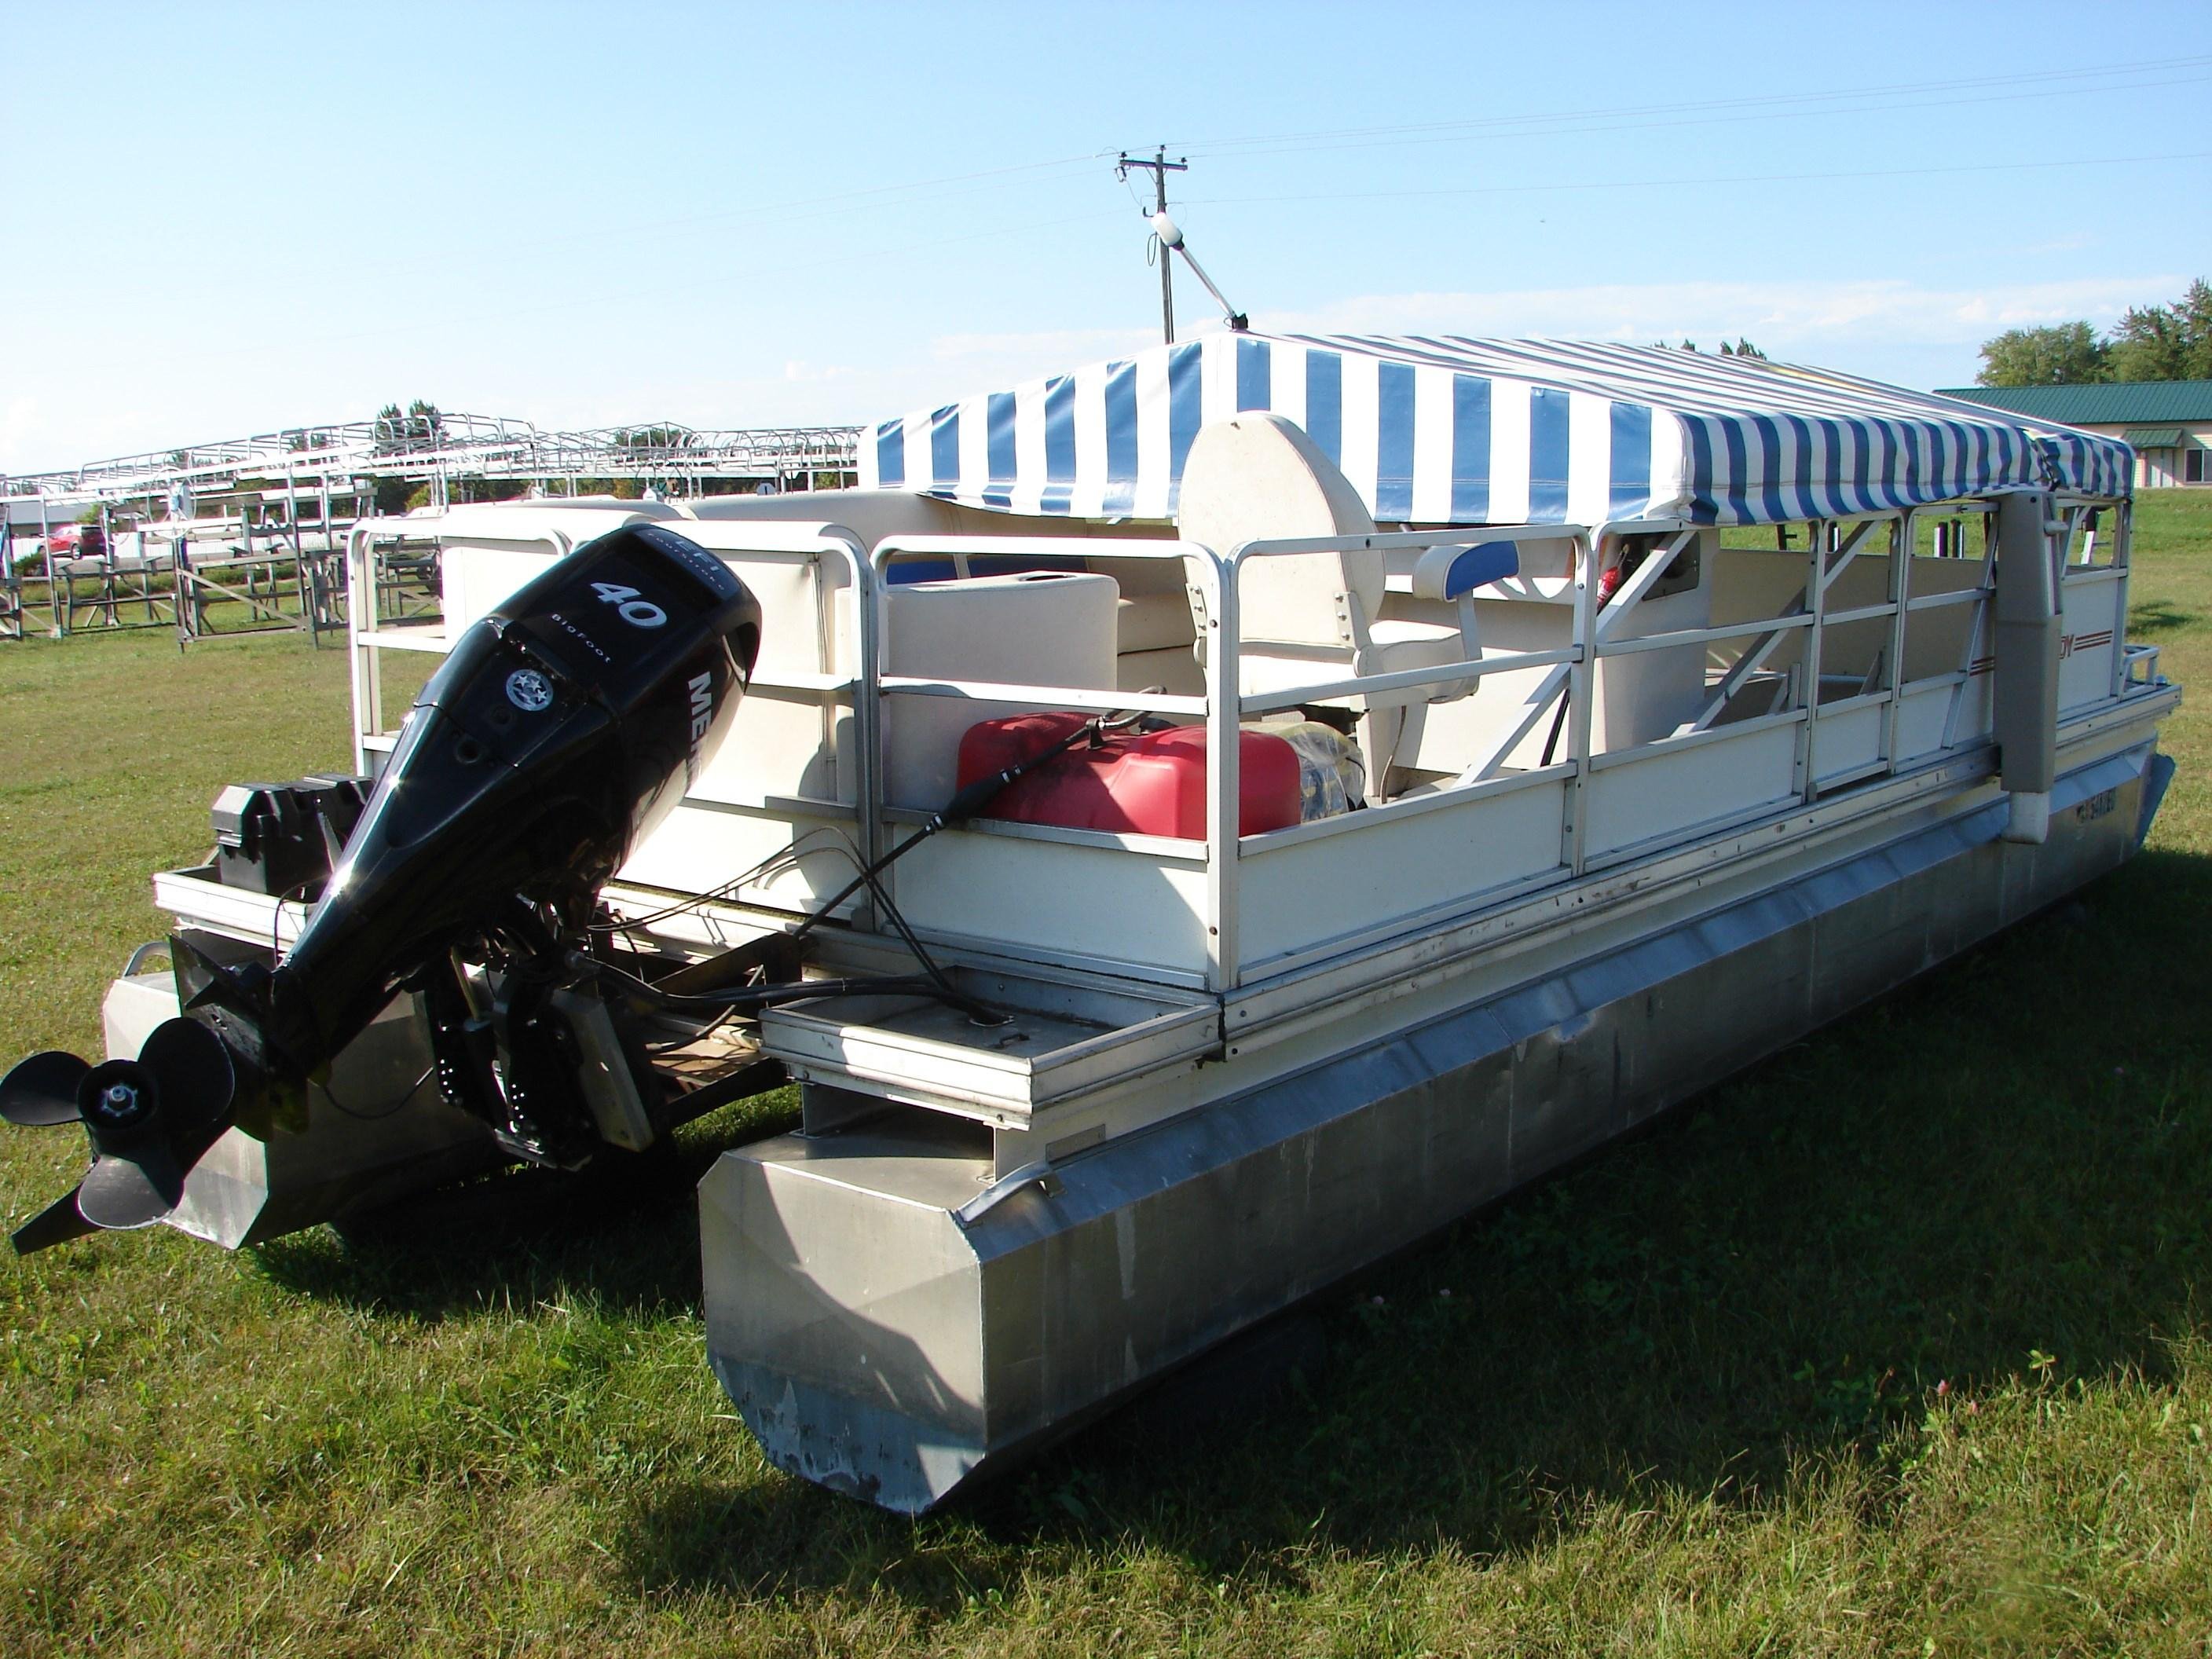 Kennedys 23' Pontoon Boats For Sale - Central Marine and